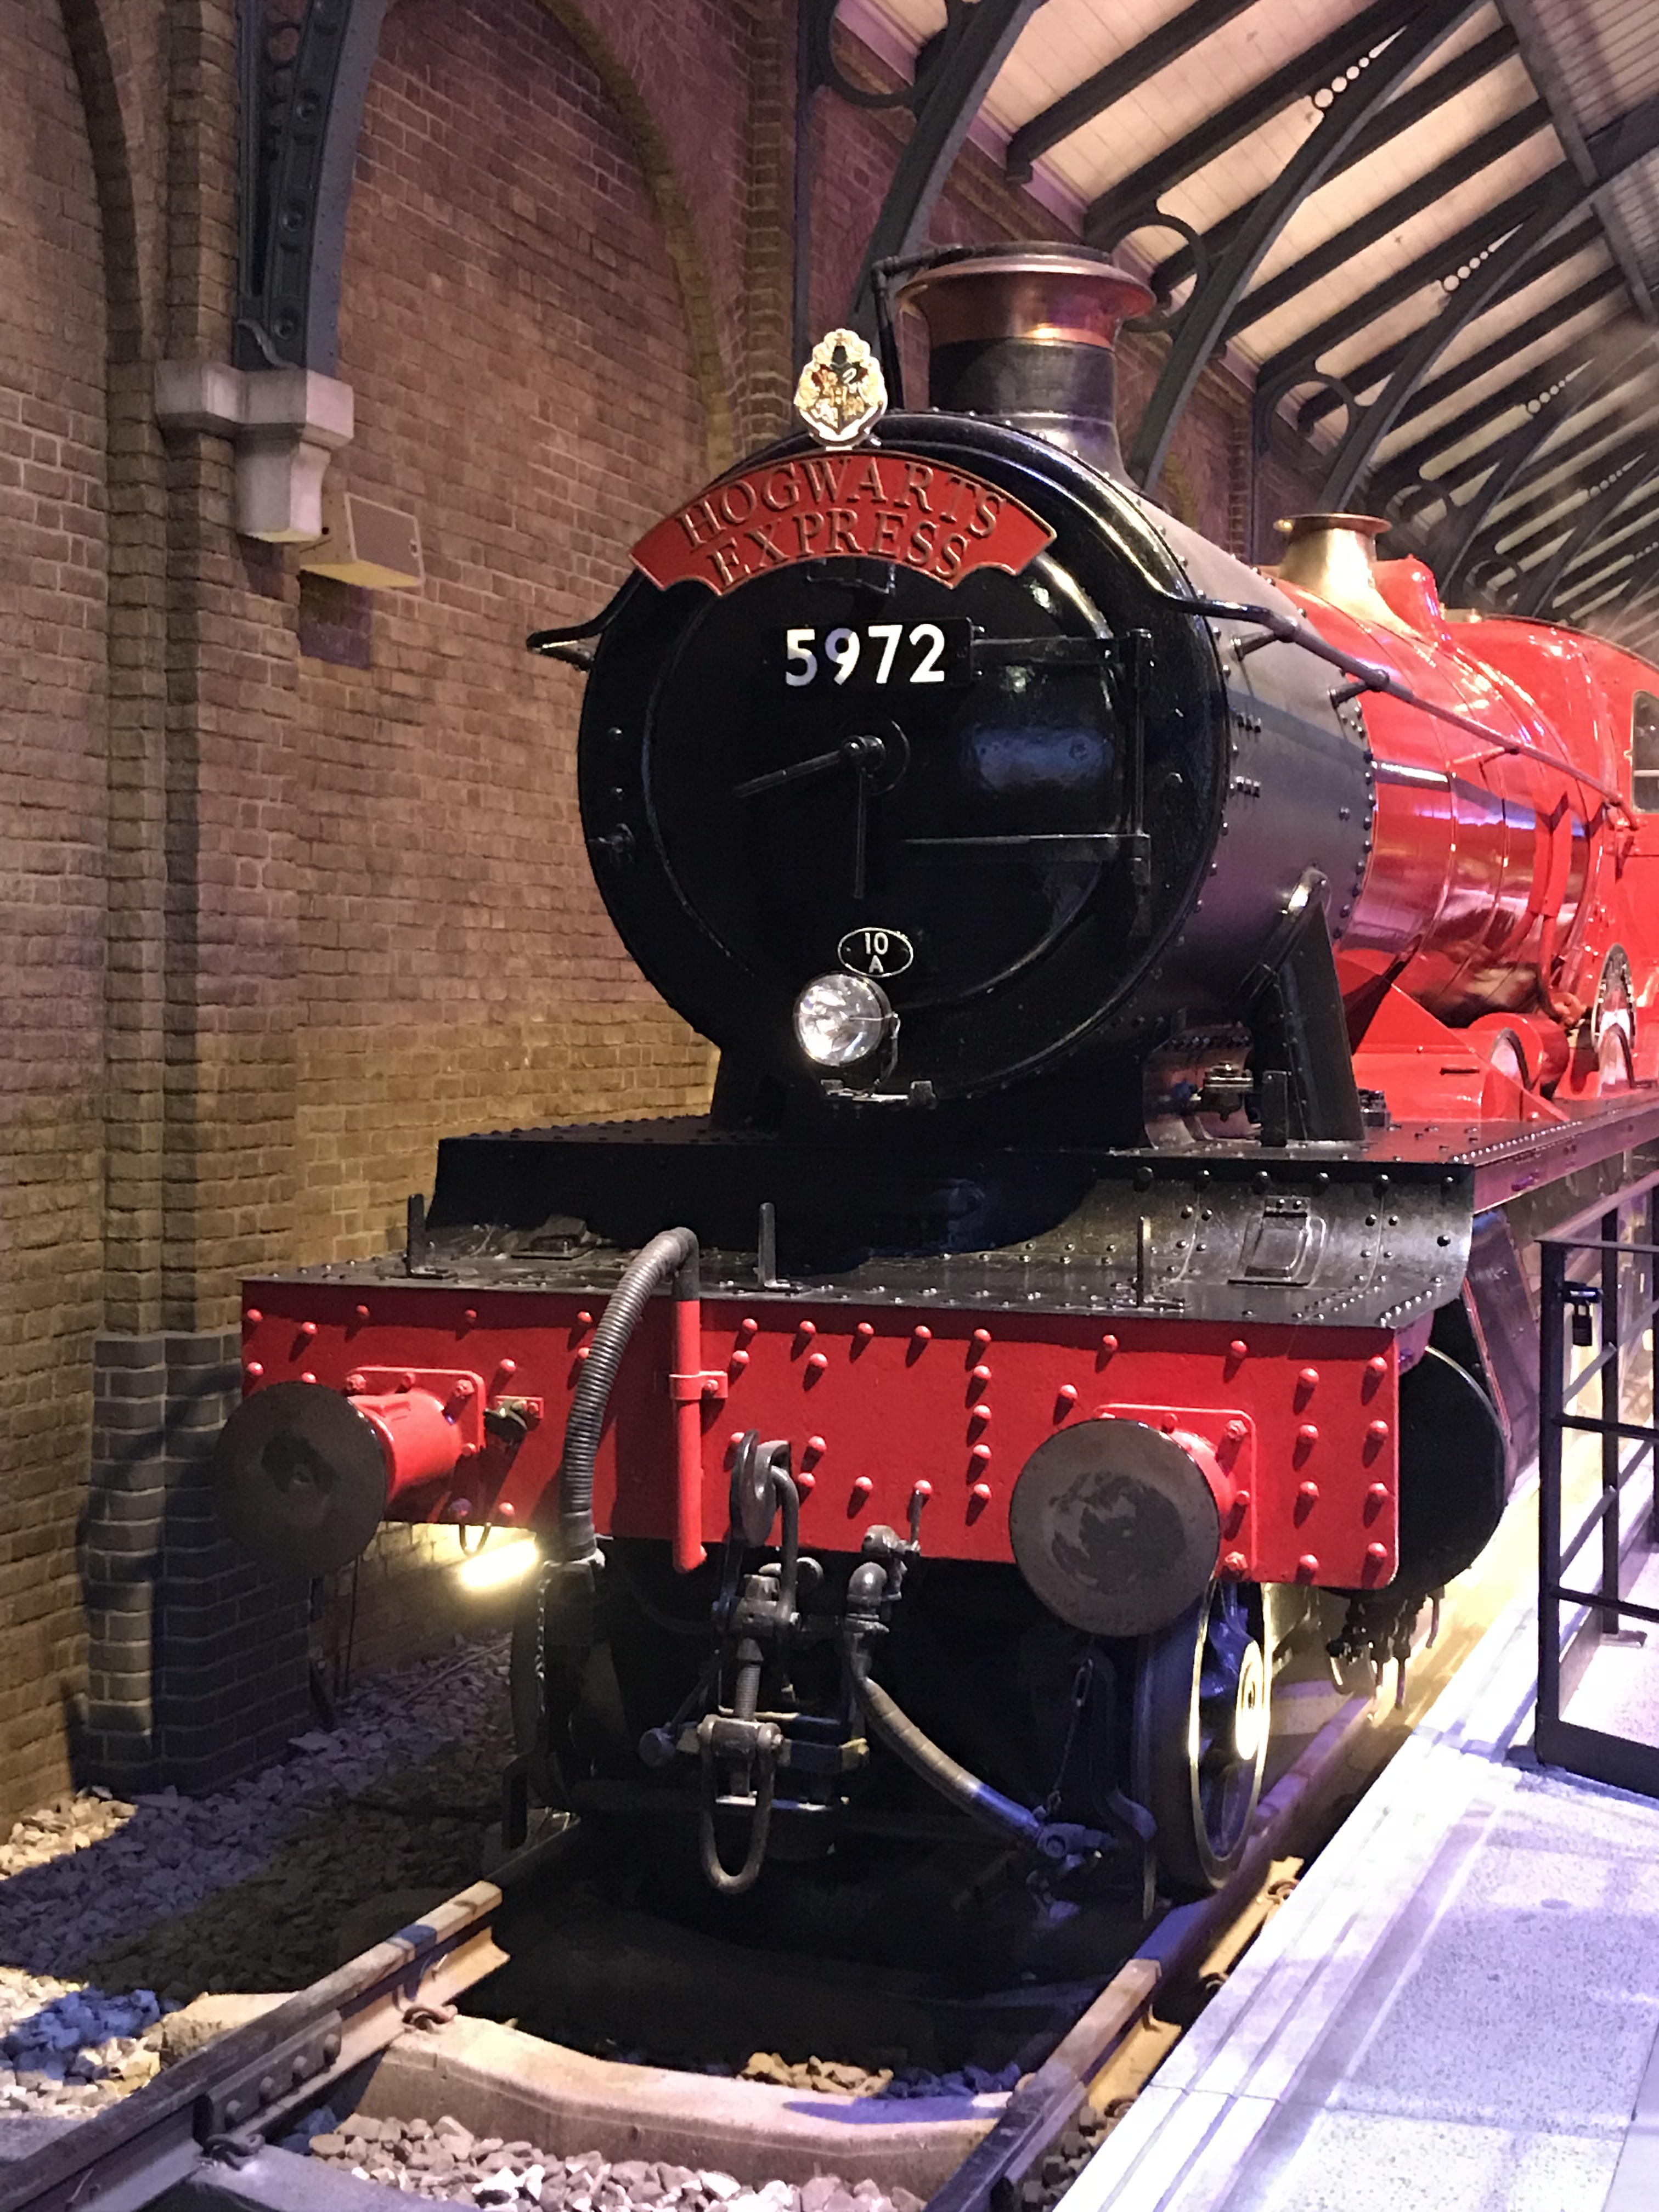 The Hogwart's Express